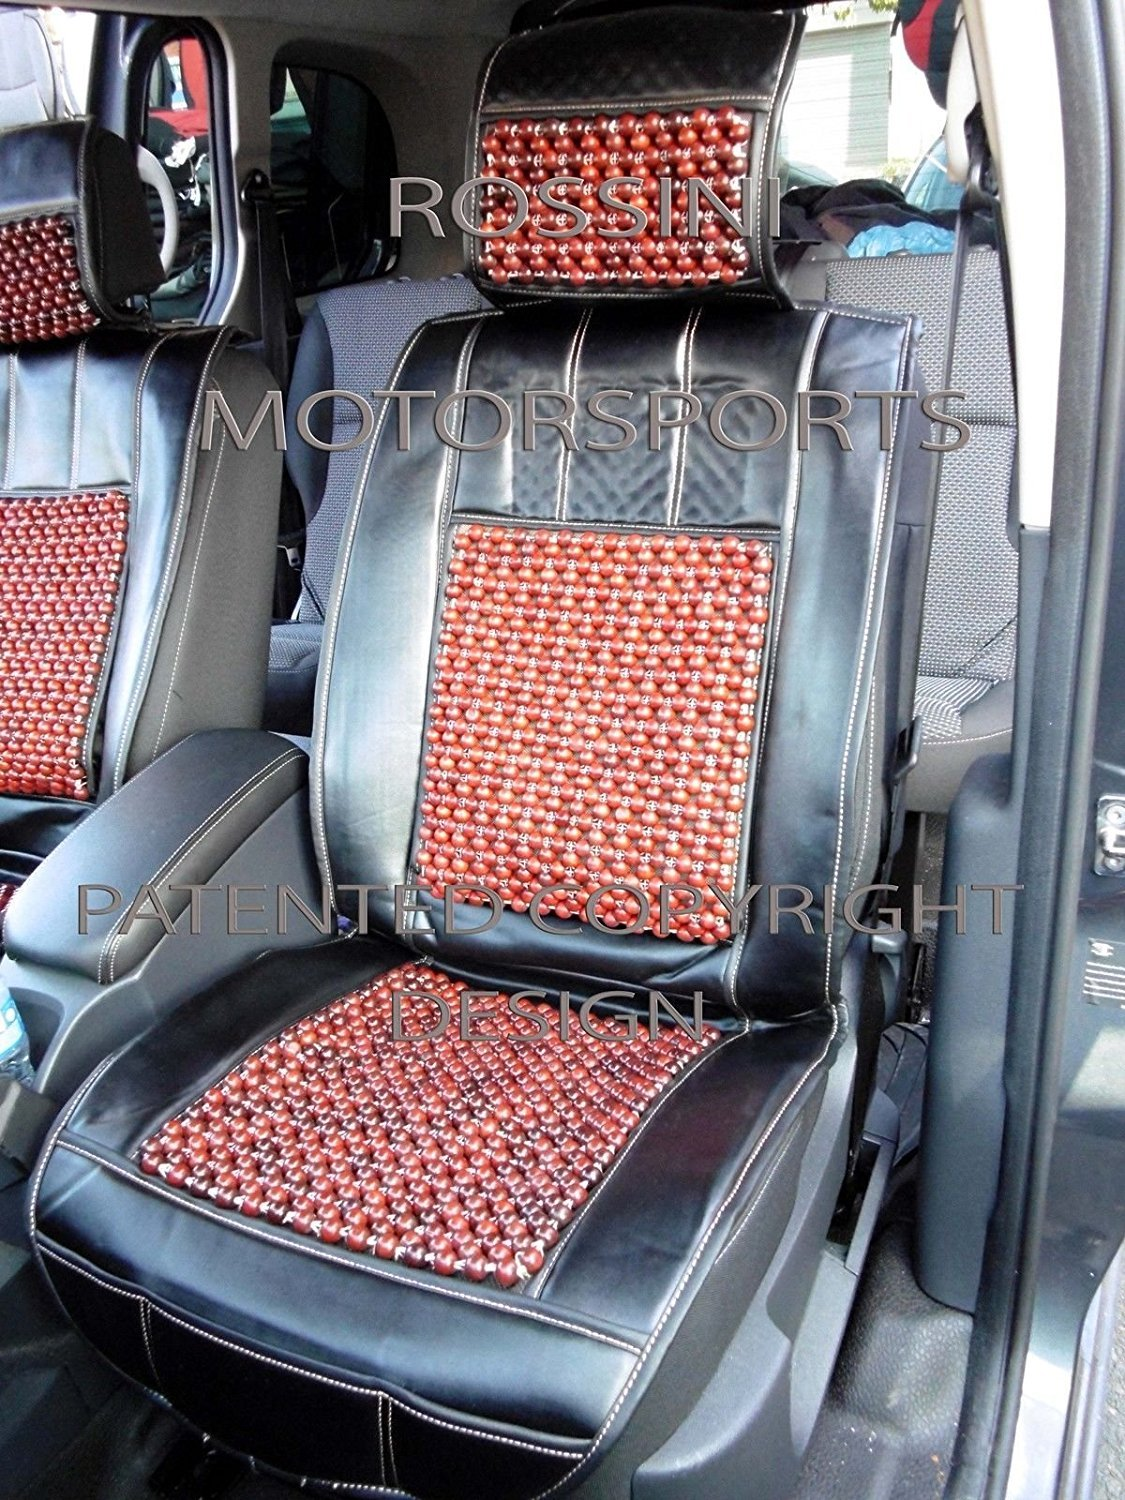 TO FIT A HONDA CRZ CAR YS 01 ROSSINI GREY//BLACK 2 FRONTS SEAT COVERS